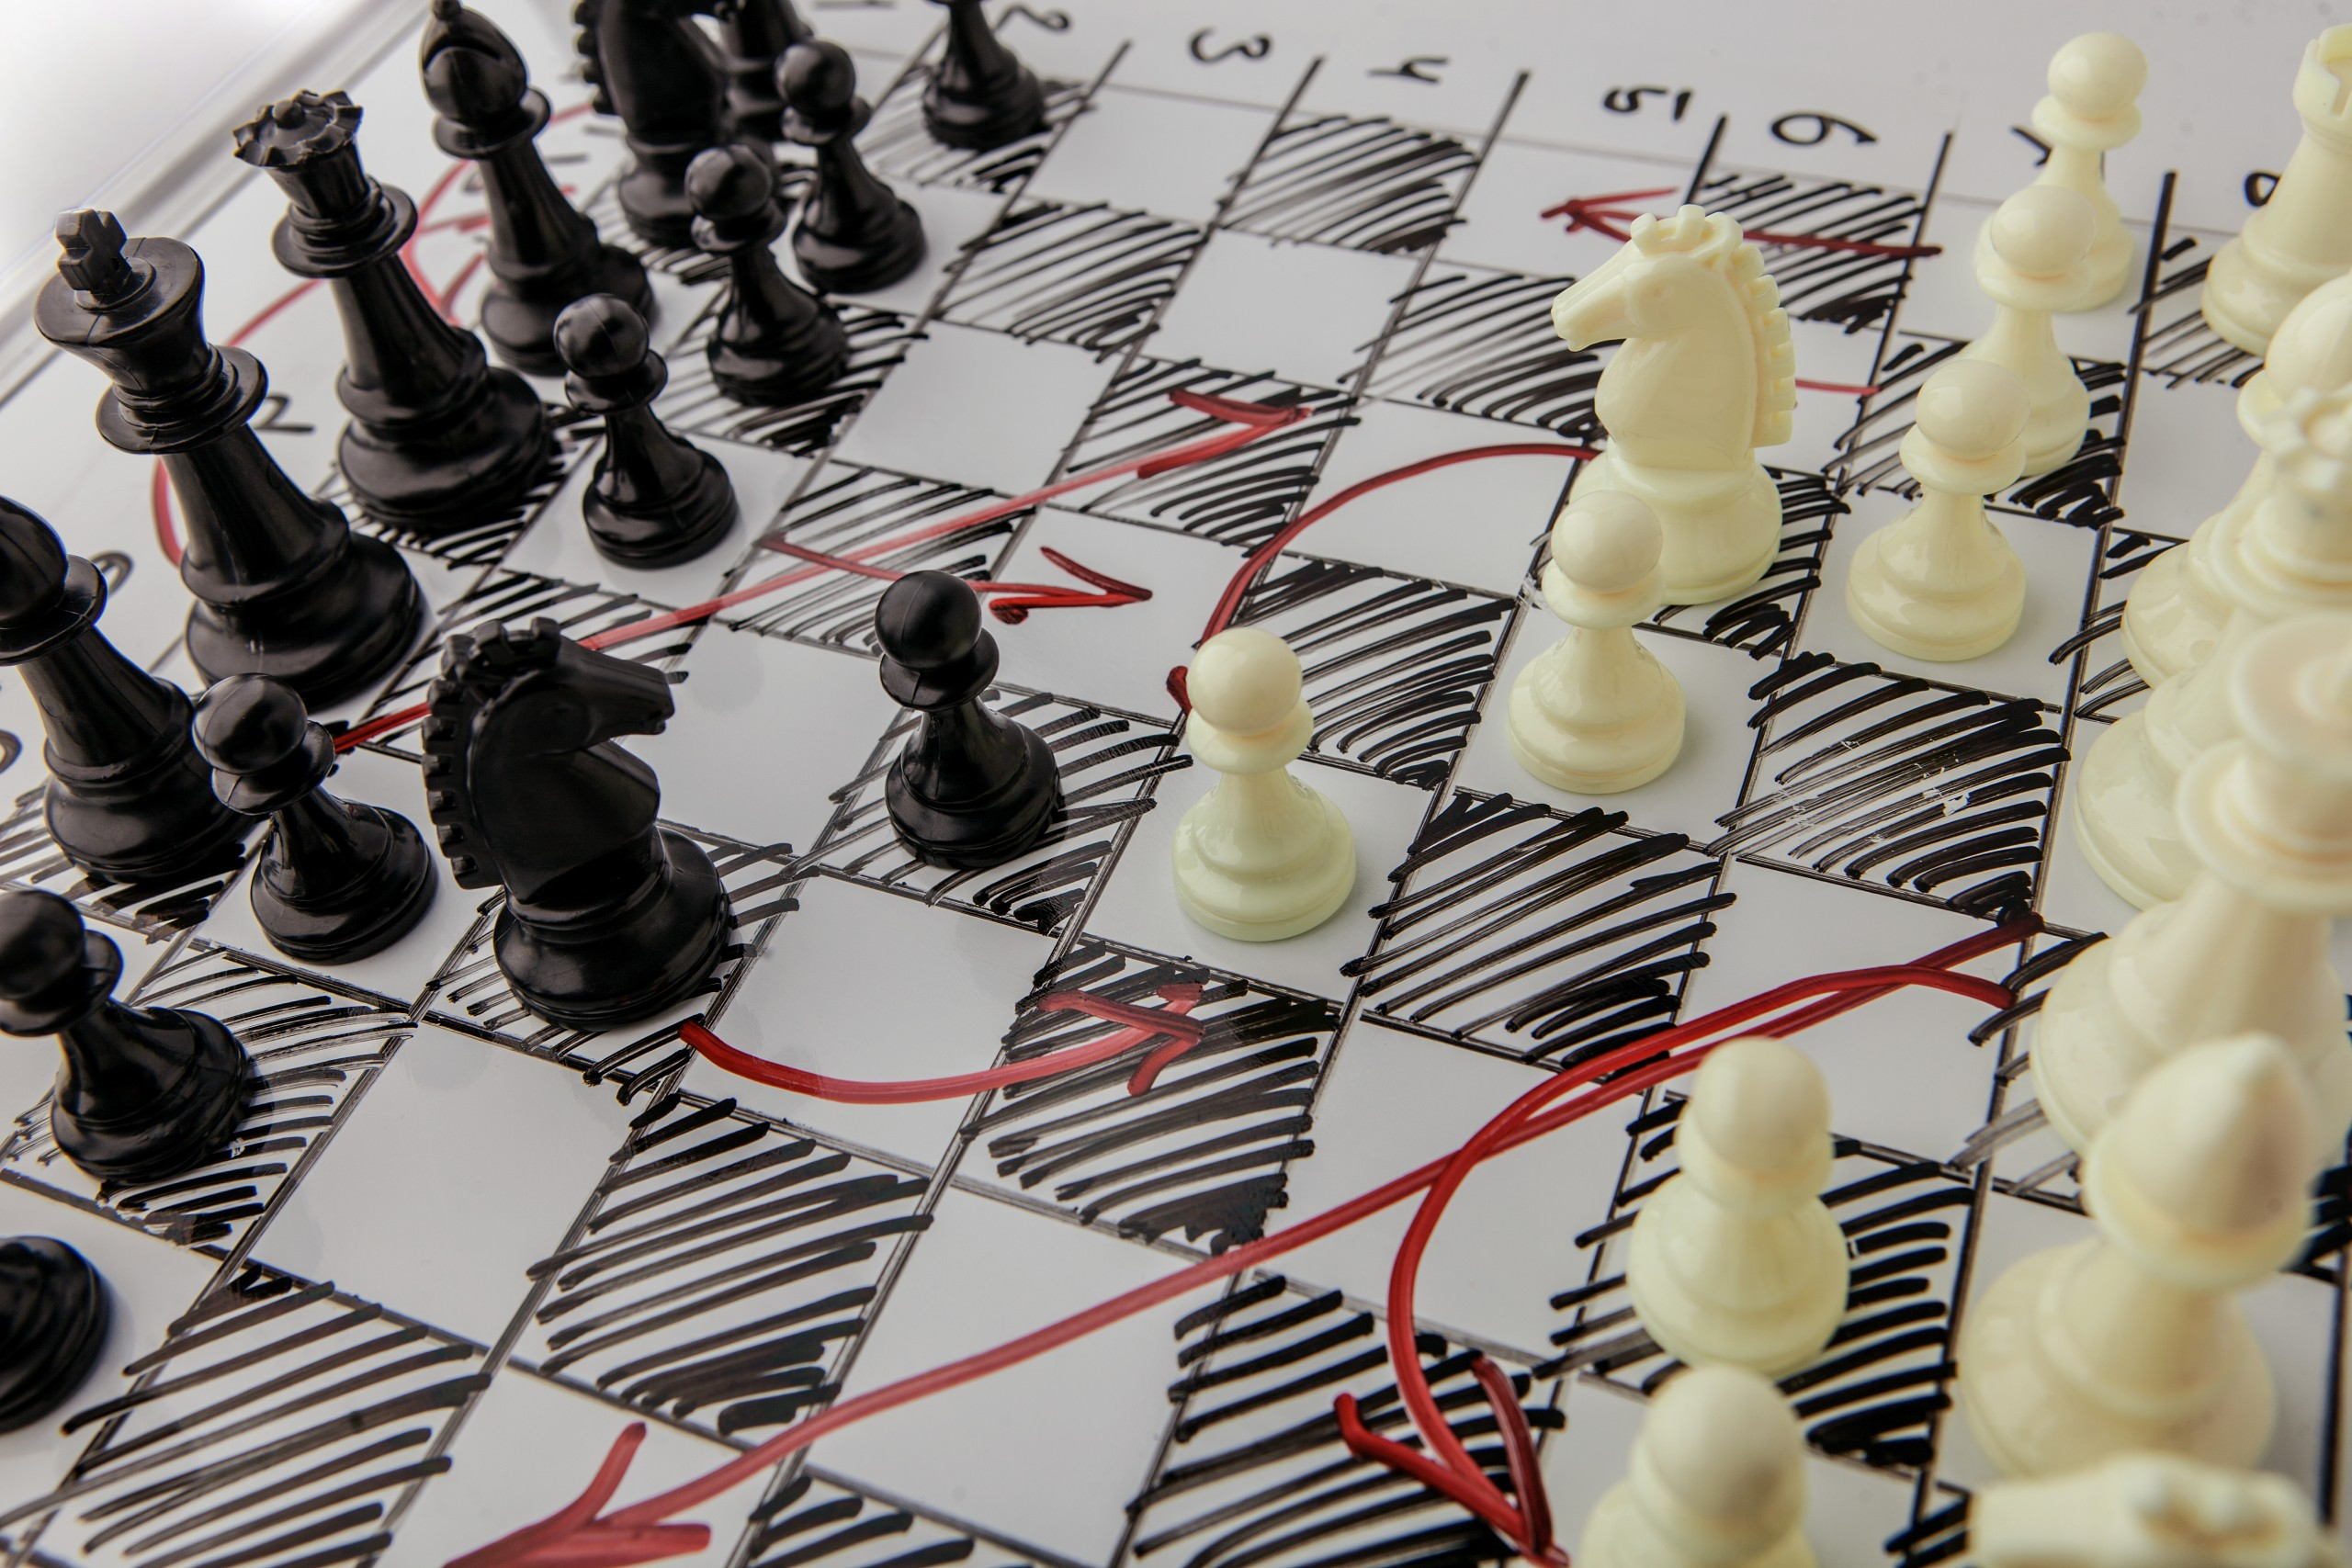 Chessboard with strategic moves